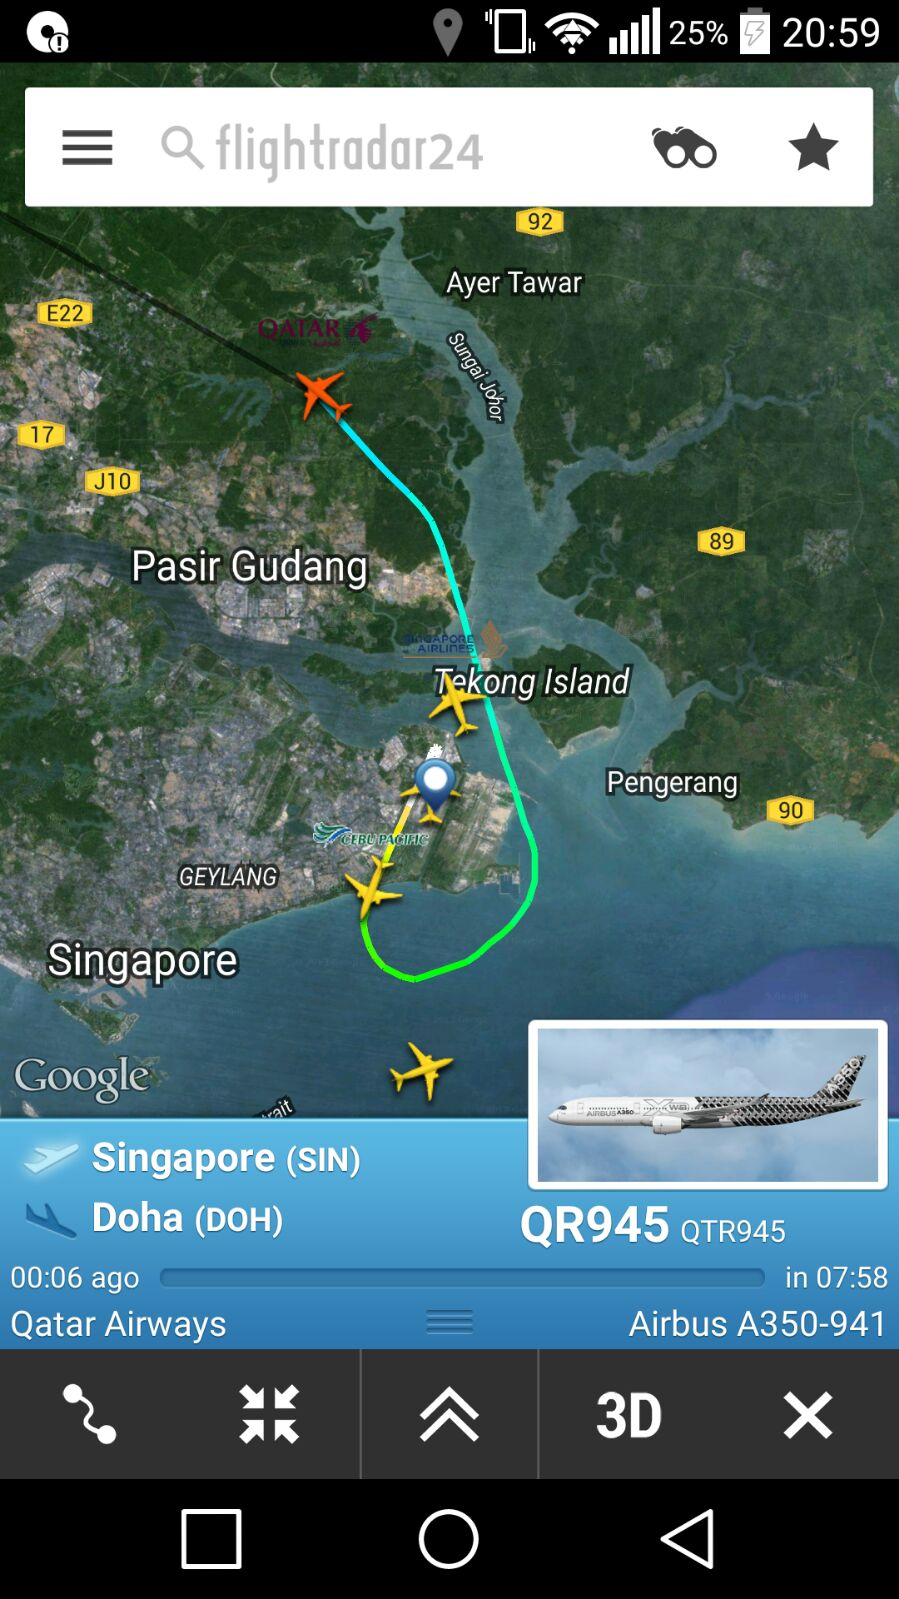 Review of Qatar Airways flight from Singapore to Doha in Economy